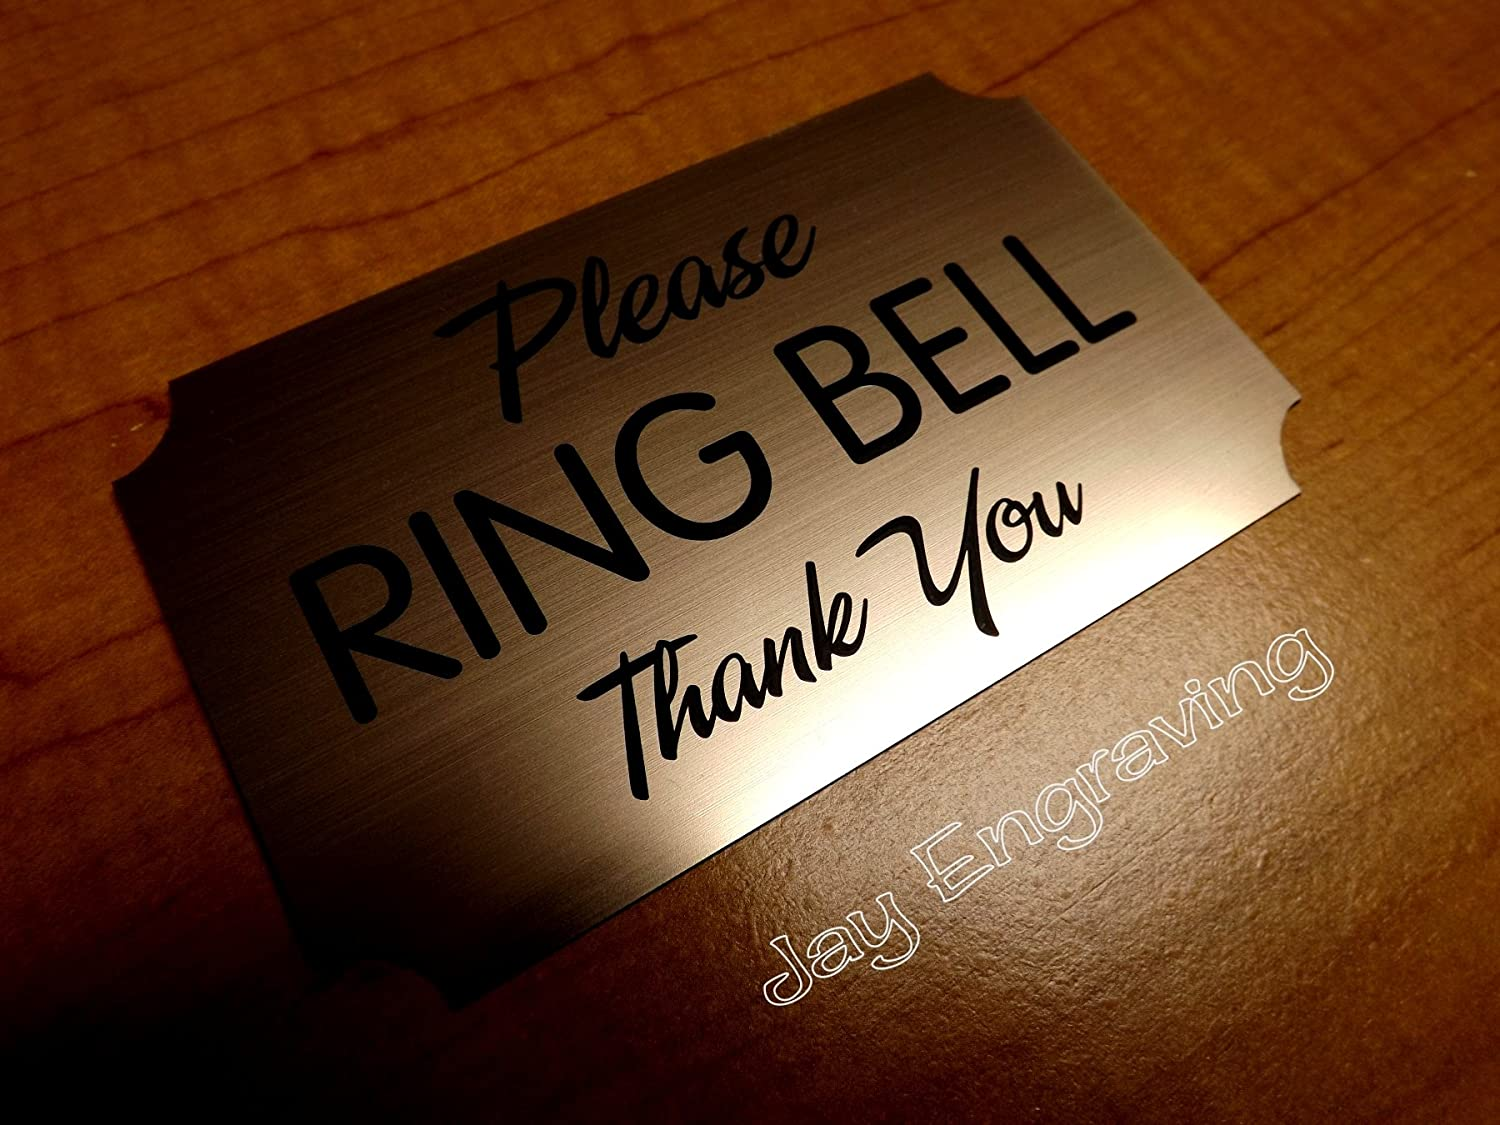 Engraved ~ Please Ring Bell ~ 3x5 Brushed Metal Finish Sign | Receptionist Office Door Desk Name Plate | Wall Plaque Business Home Office Decor Elegant Custom Engraving Adhesive Back (Brushed Silver) JAY Graphics